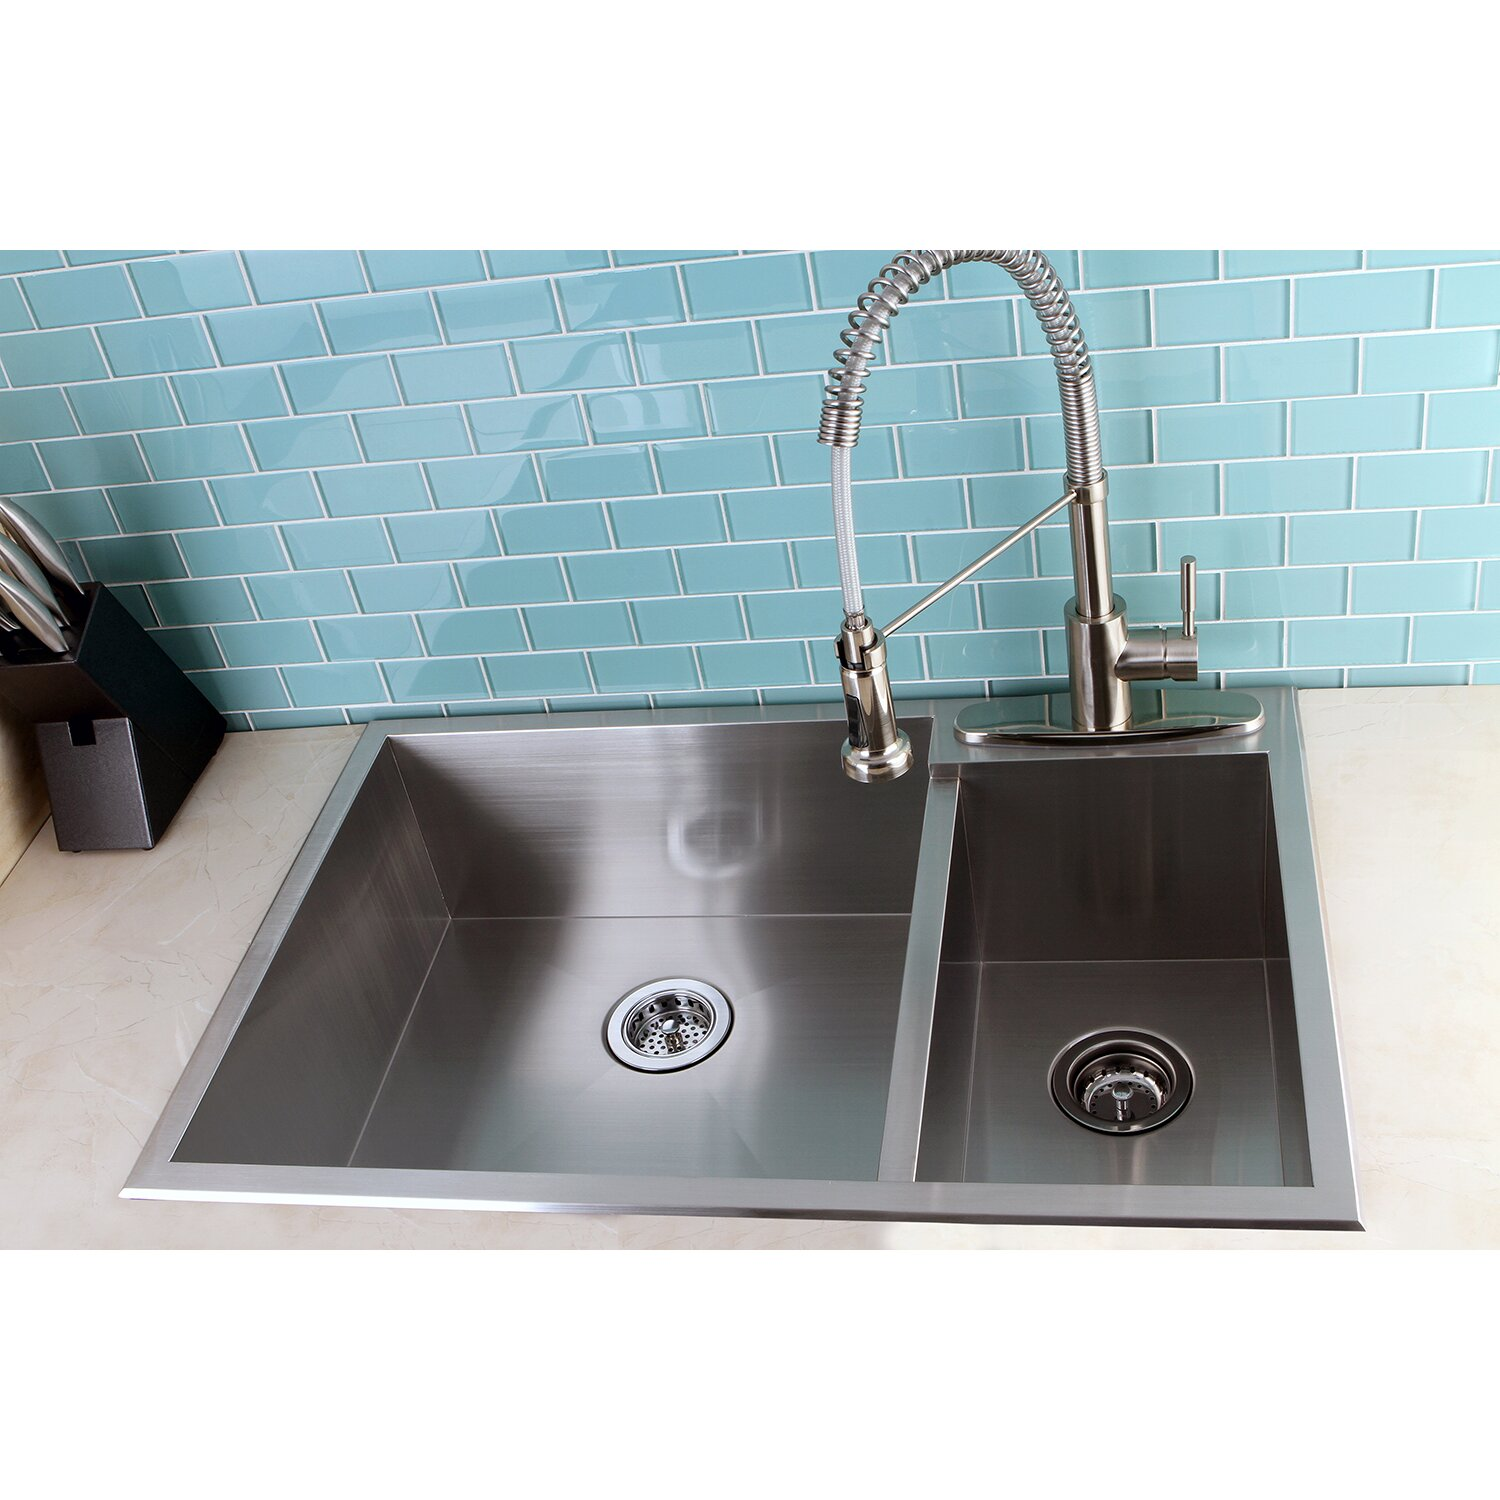 30 inch double bowl kitchen sink kingston brass uptowne 33 quot x 22 quot self 70 30 8982